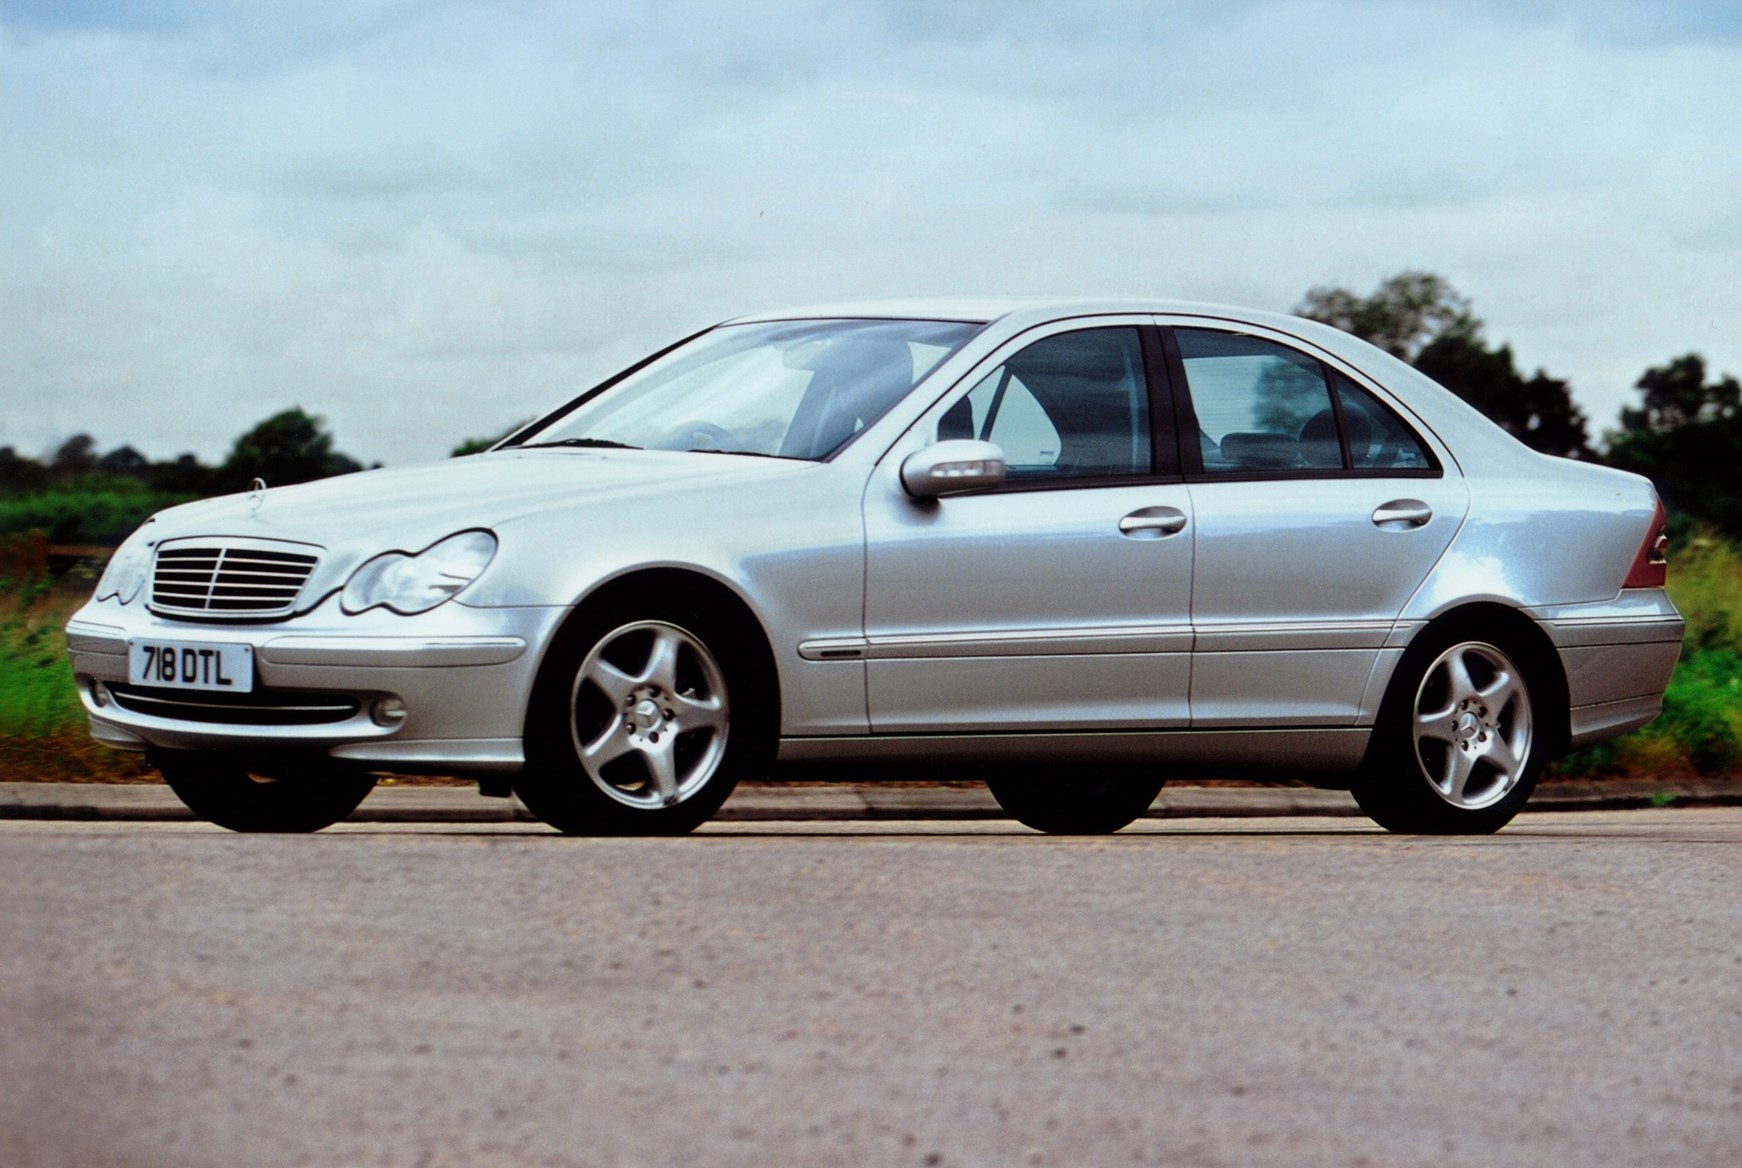 Mercedes-Benz C-klasse AMG II (W203) 2001 - 2004 Hatchback 3 door #1